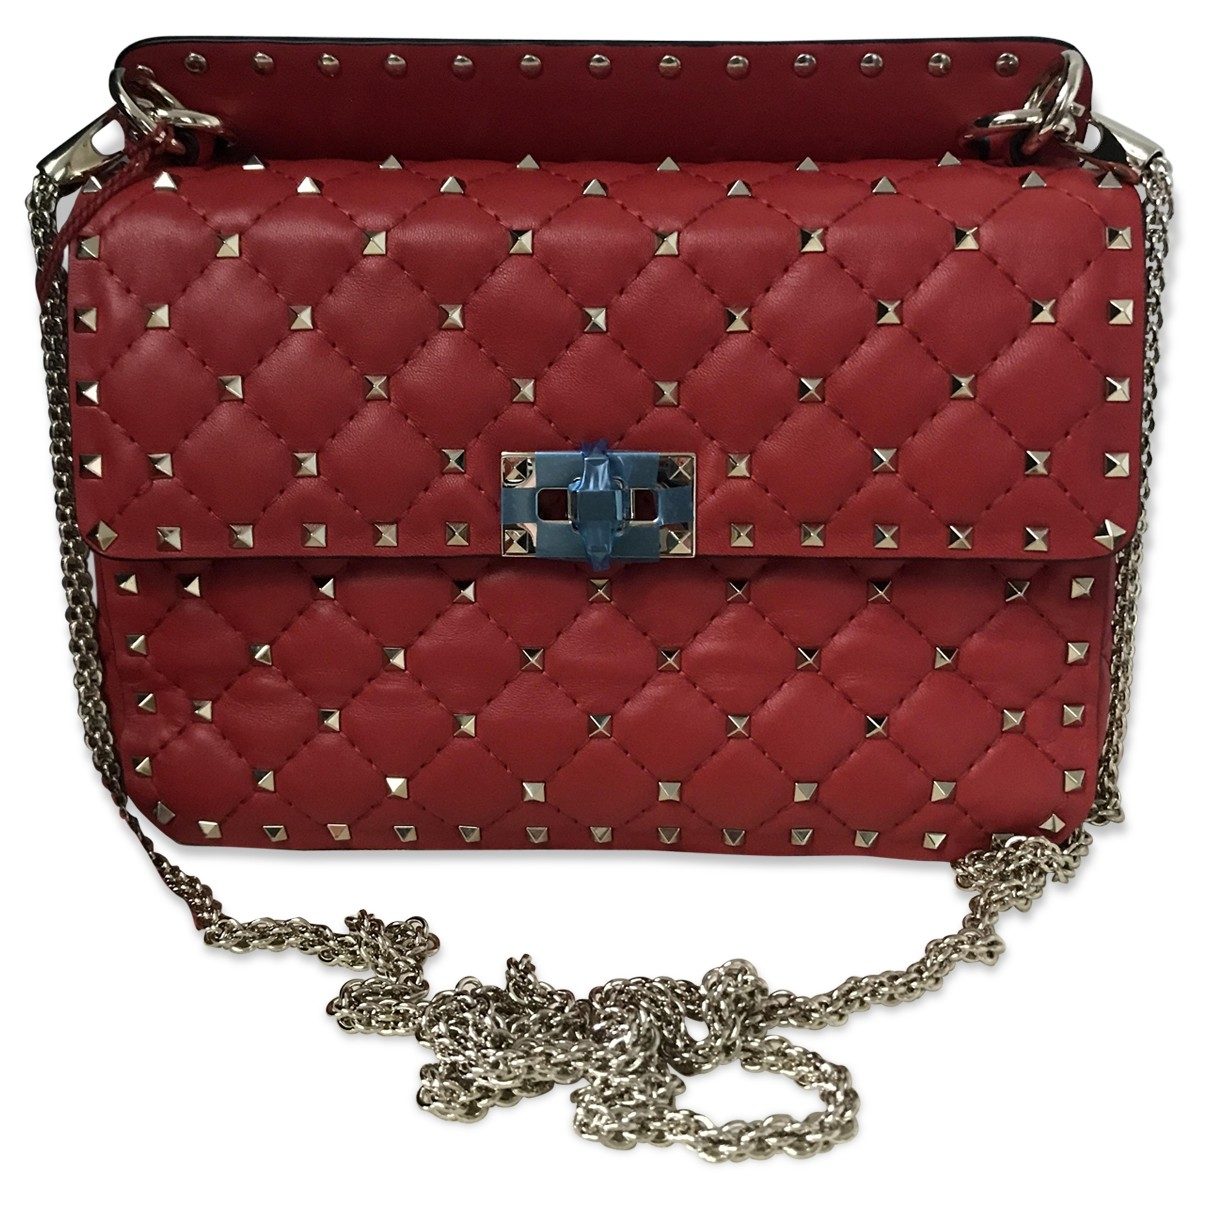 Valentino Garavani Rockstud spike Red Leather handbag for Women \N